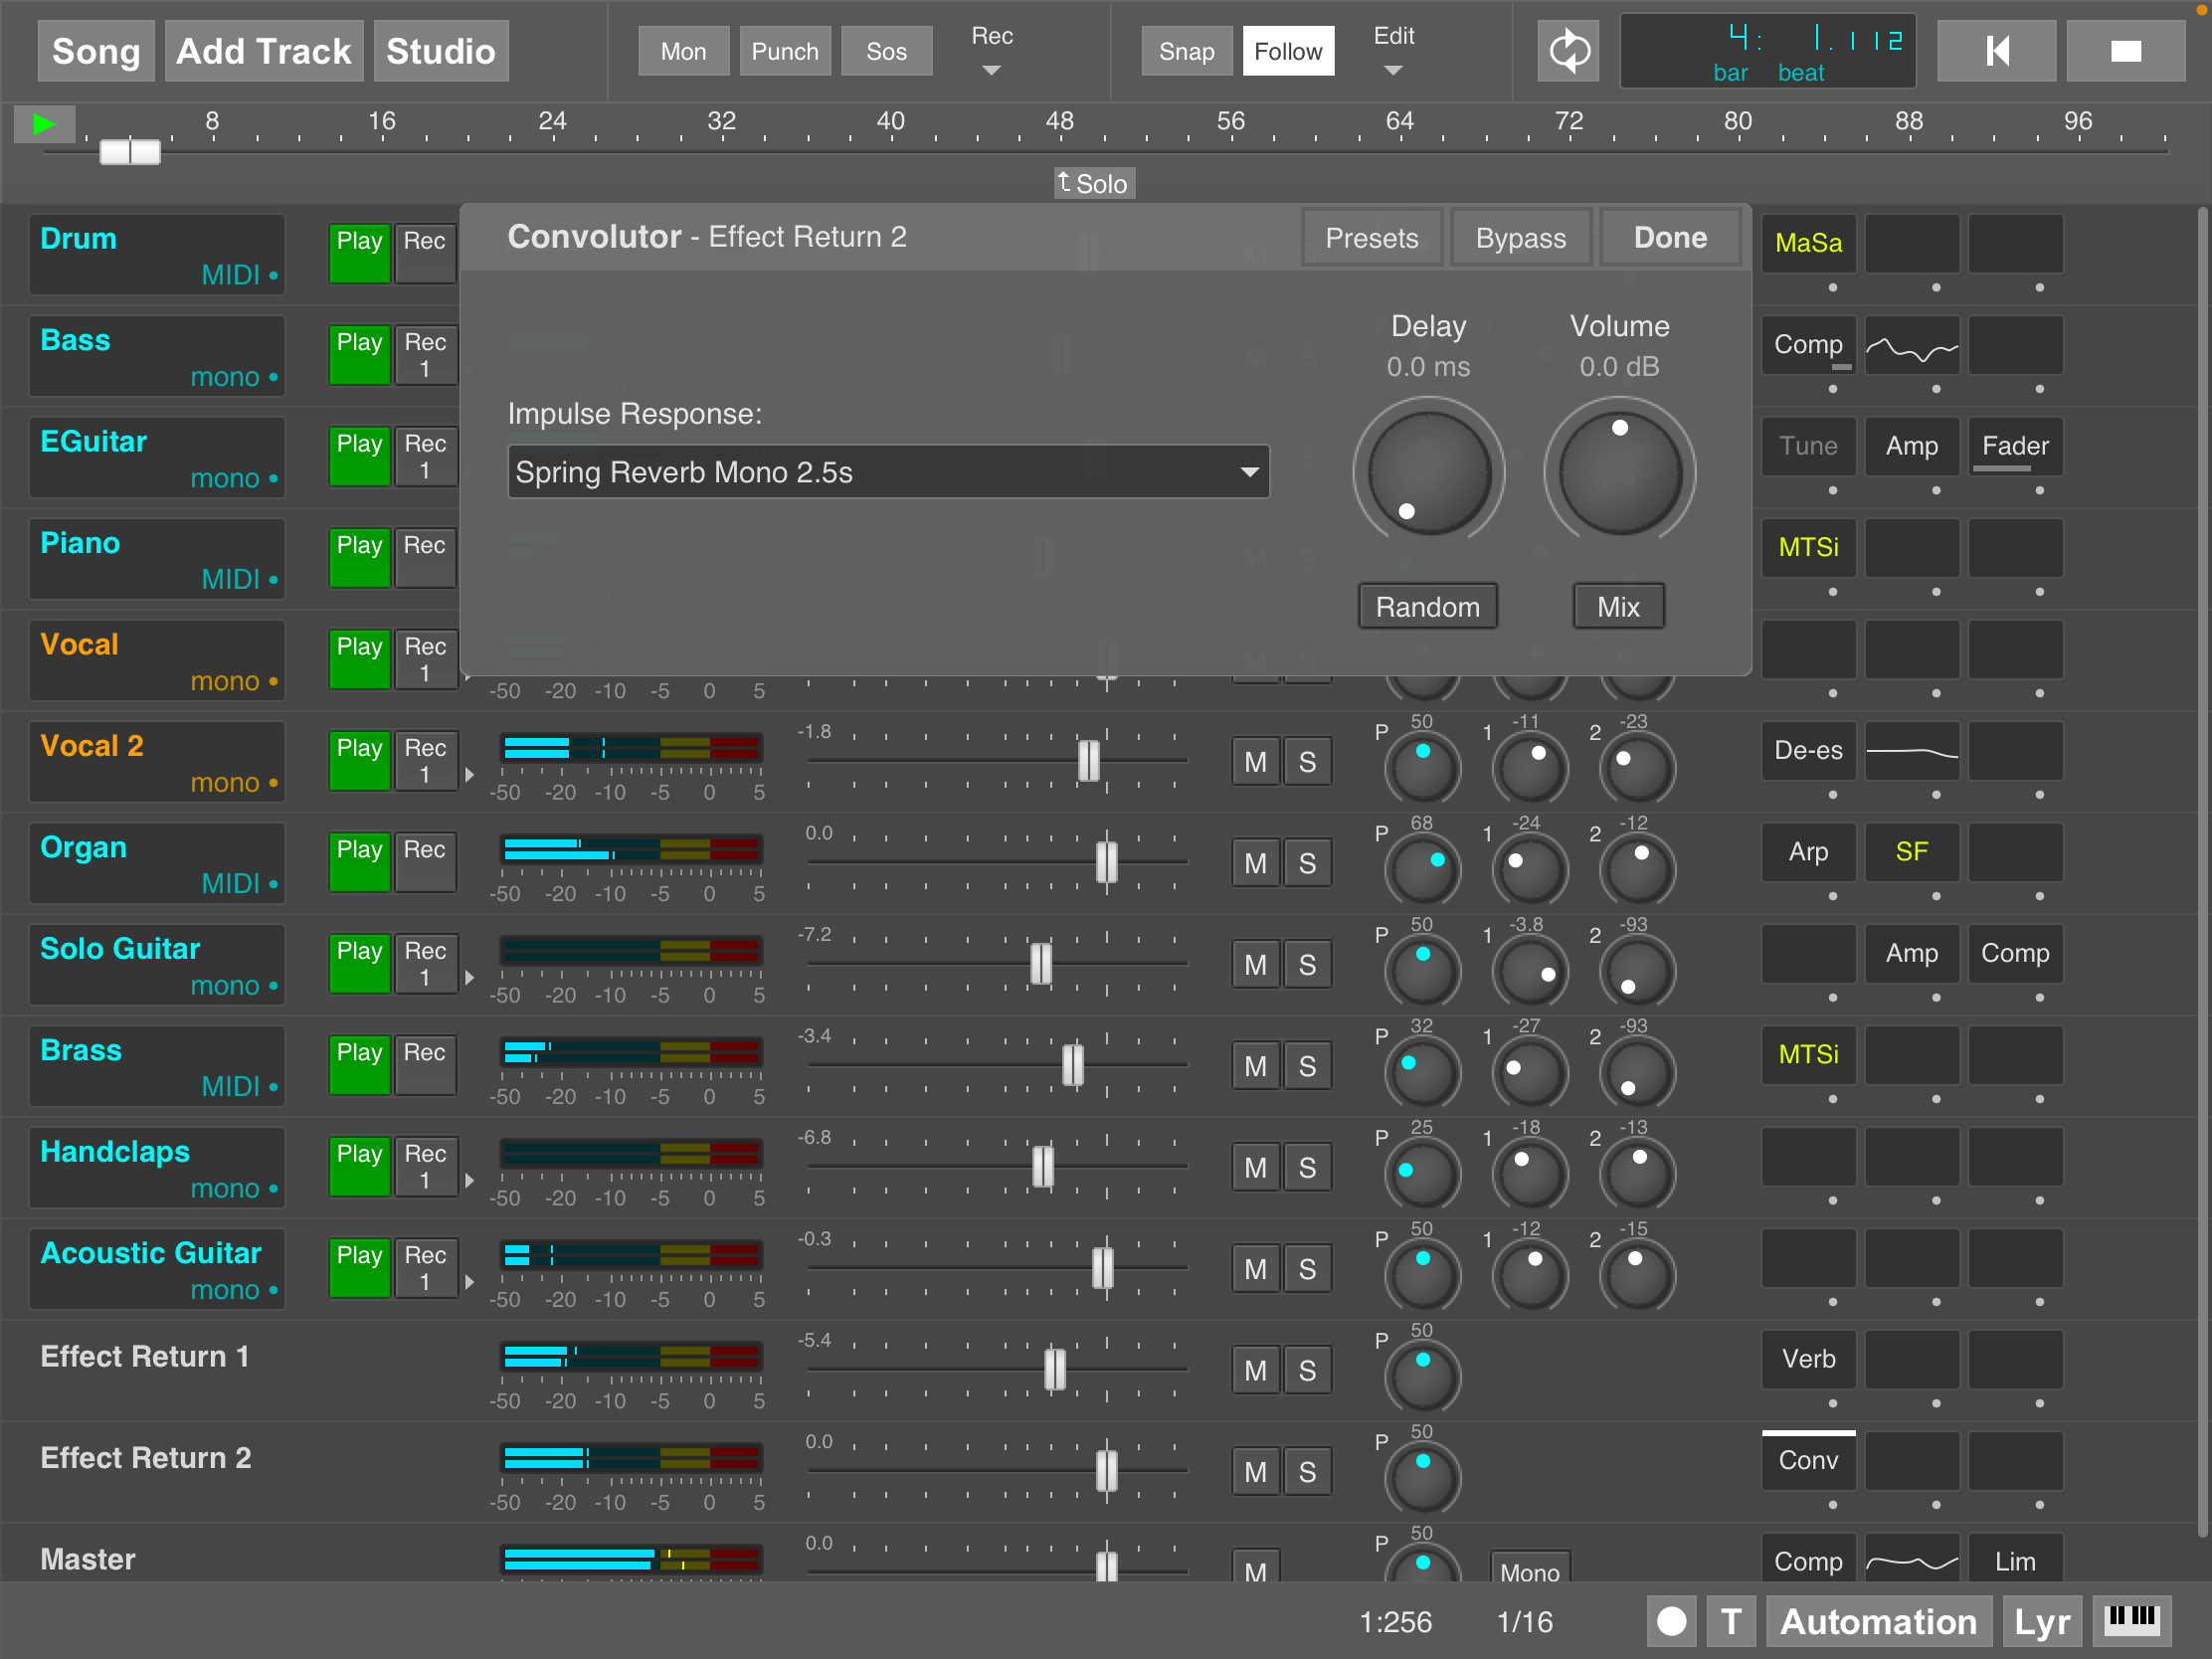 MultitrackStudio for iPad - Convolutor effect and extra Effect Return section